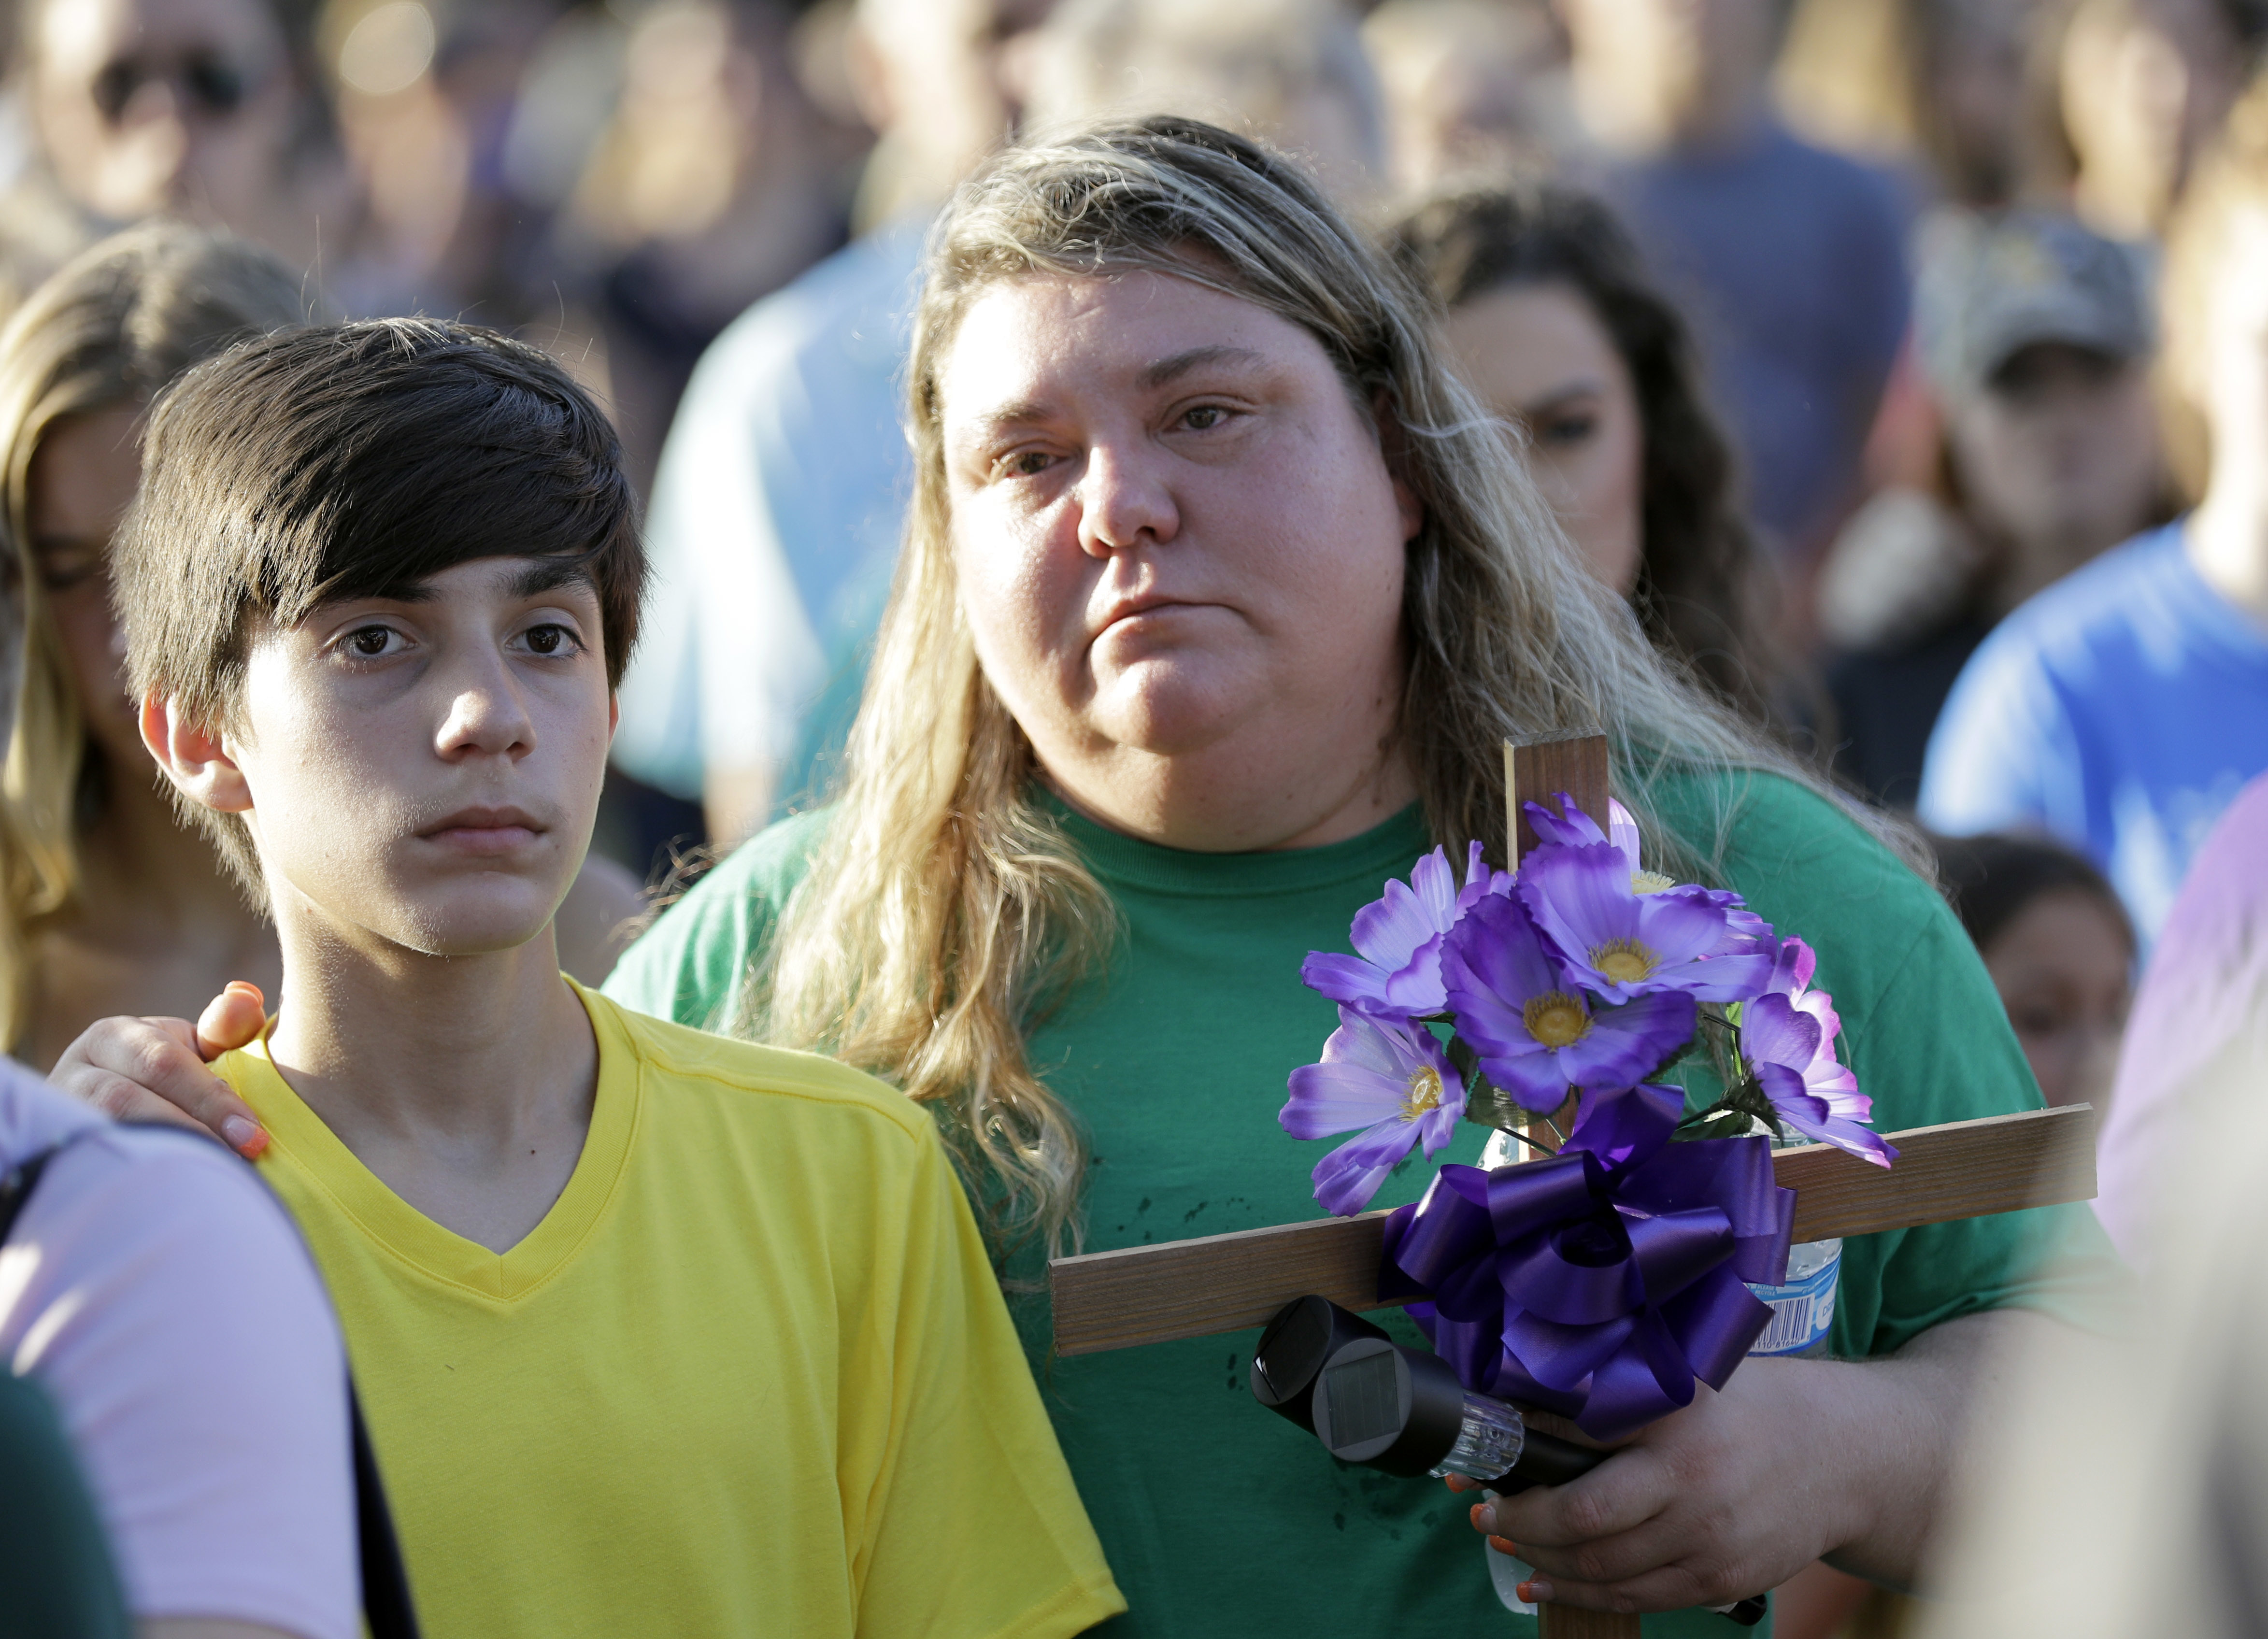 <div class='meta'><div class='origin-logo' data-origin='AP'></div><span class='caption-text' data-credit='AP'>Mourners listen during a prayer vigil following a shooting at Santa Fe High School in Santa Fe, Texas, on Friday, May 18, 2018.   (AP Photo/David J. Phillip)</span></div>